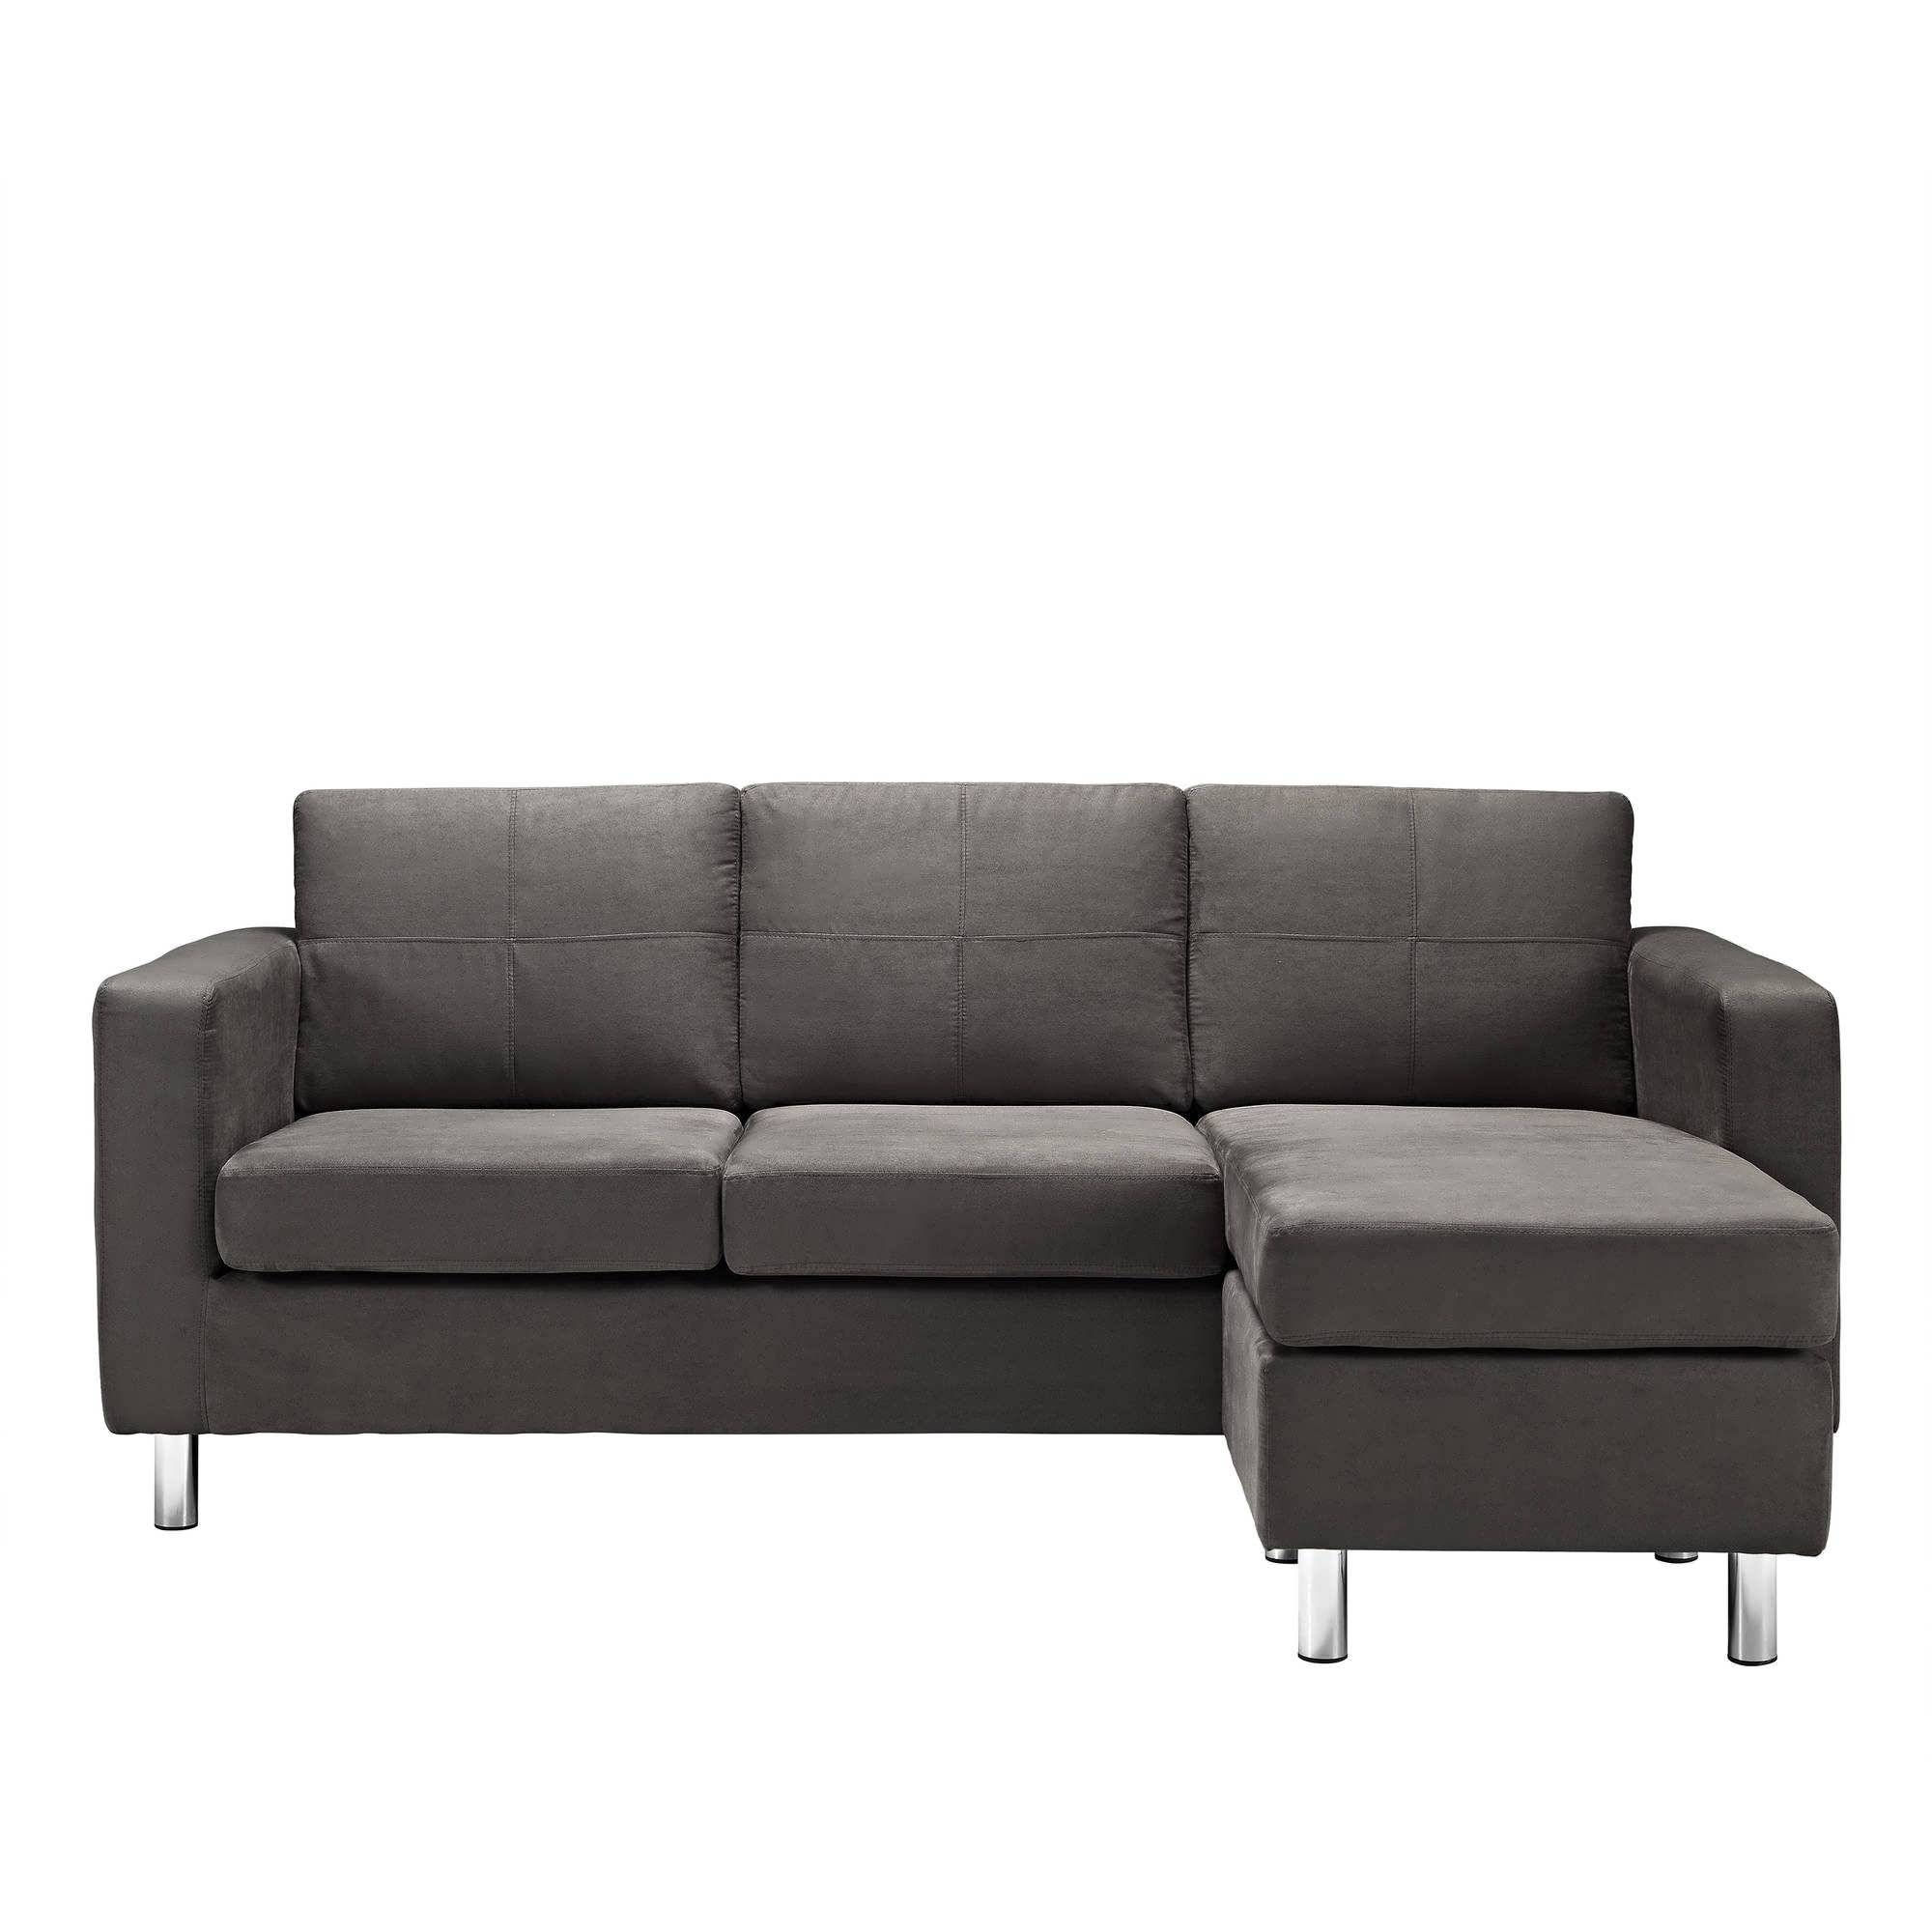 Sofa : Apartment Sectional Reclining Sectional Sofas For Small within Modern Small Sectional Sofas (Image 13 of 15)